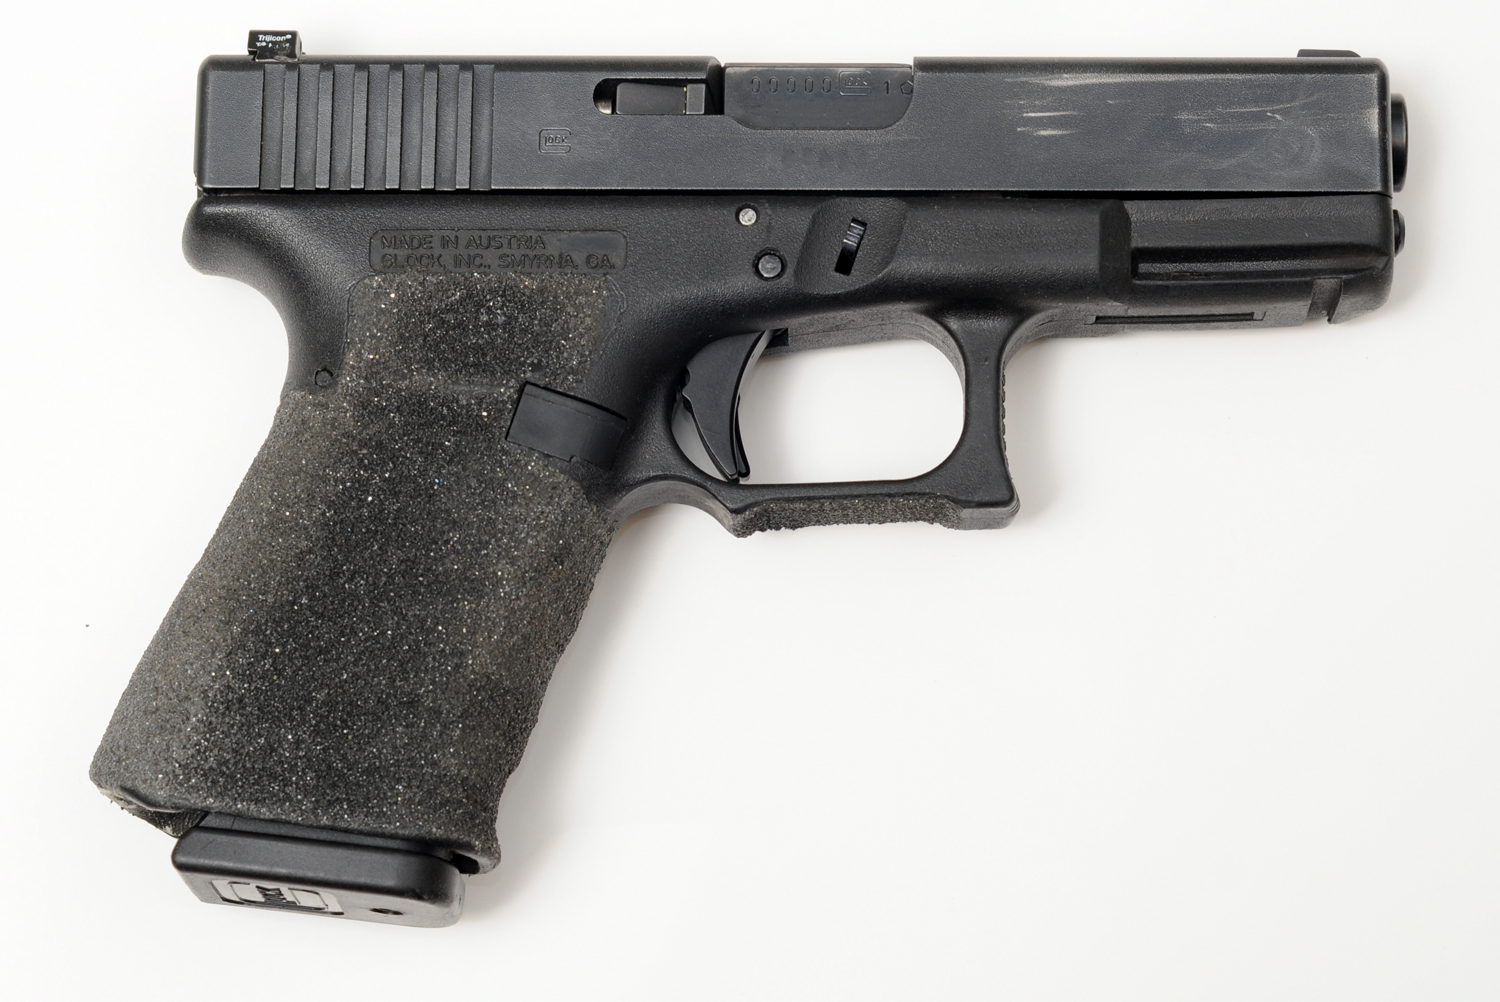 Glock 19 G19 Semi-Automatic Pistol Review - The Shooter's Blog